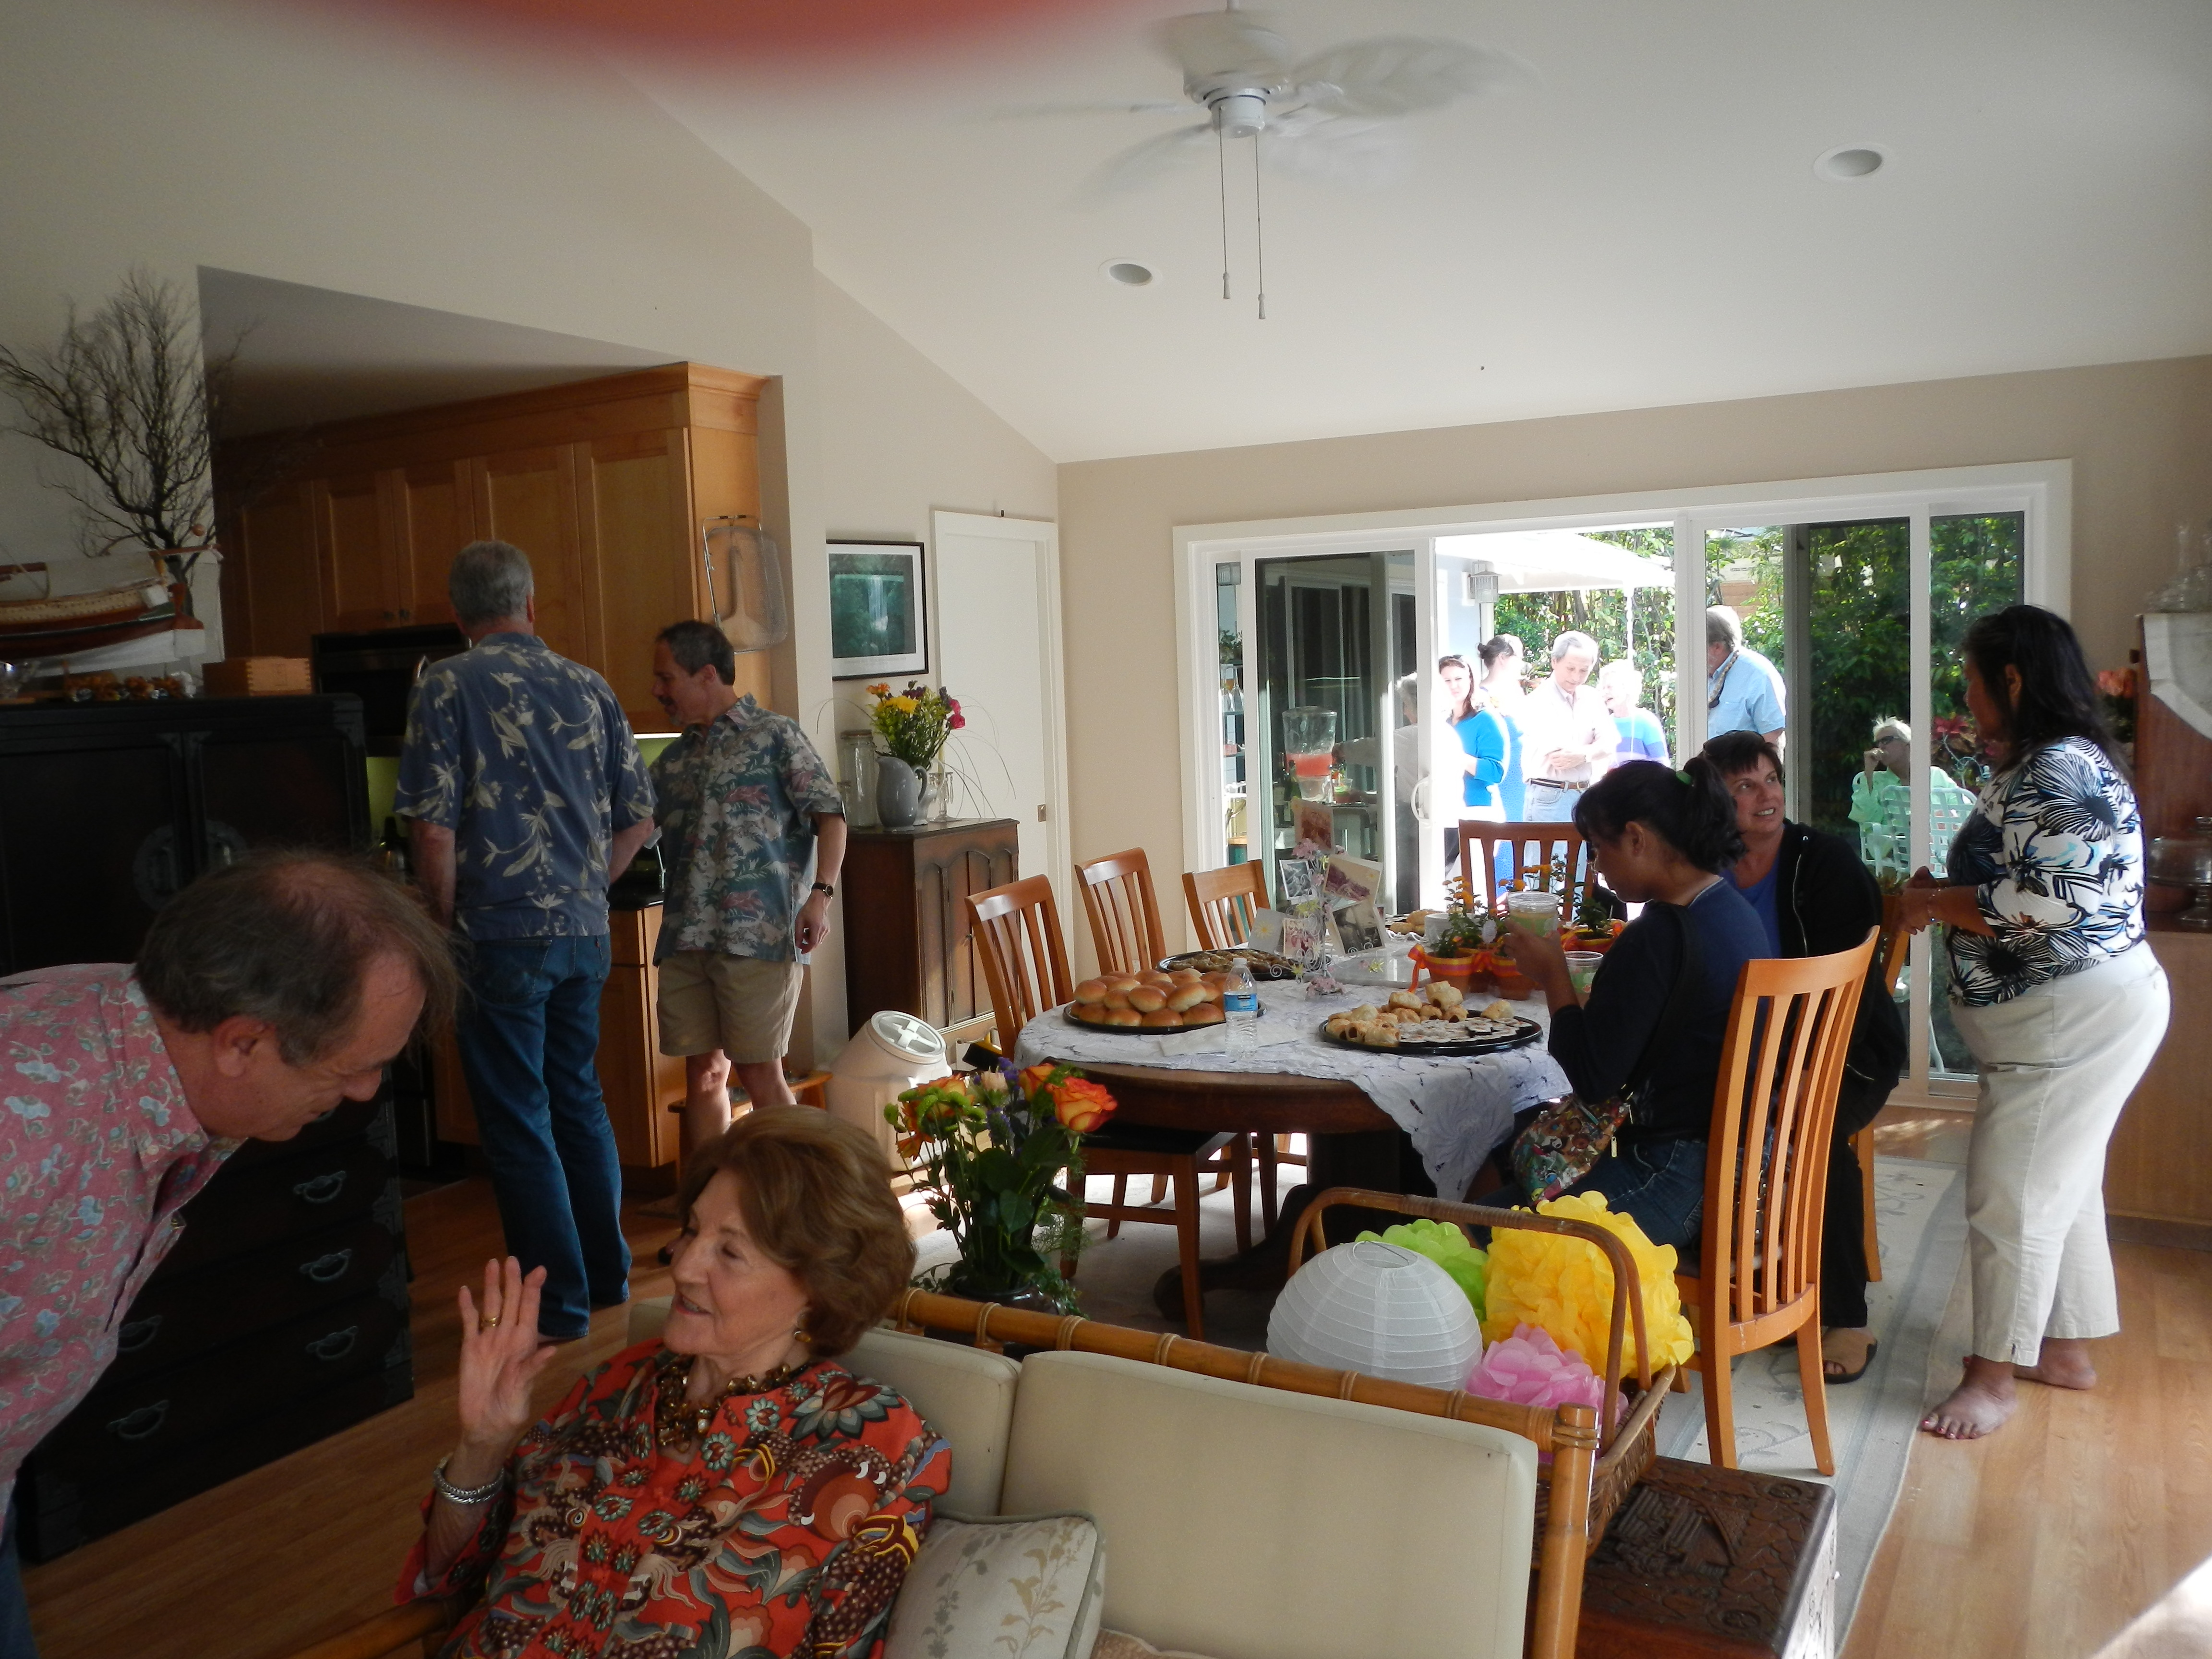 and mom got what she wanted, a house full of friends enjoying each others company.